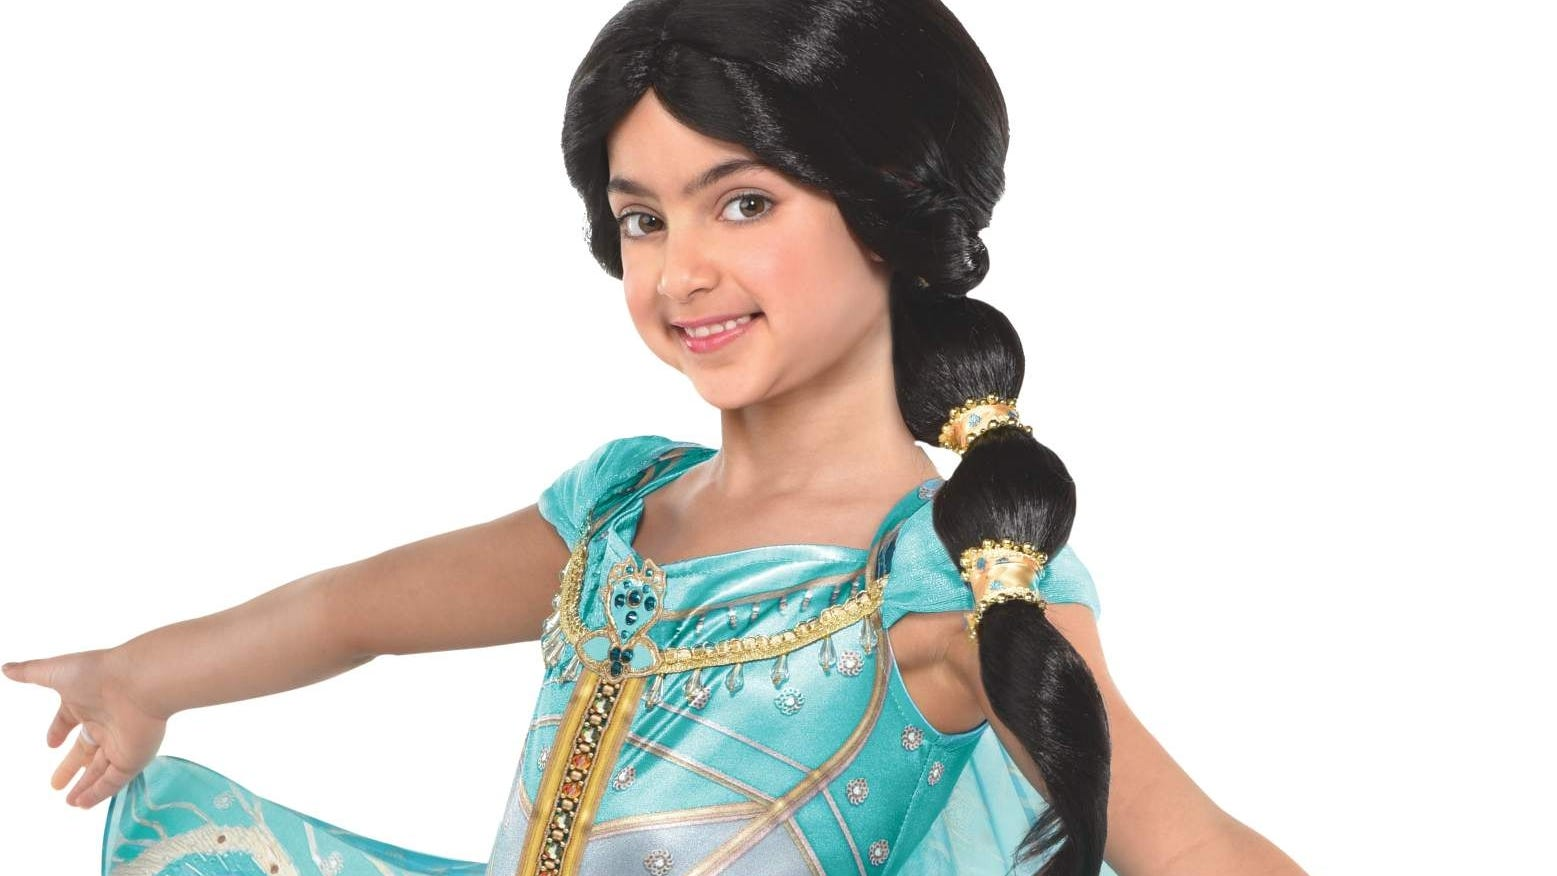 Halloween Costume Ideas From Princesses To Pirates Classics Thrive